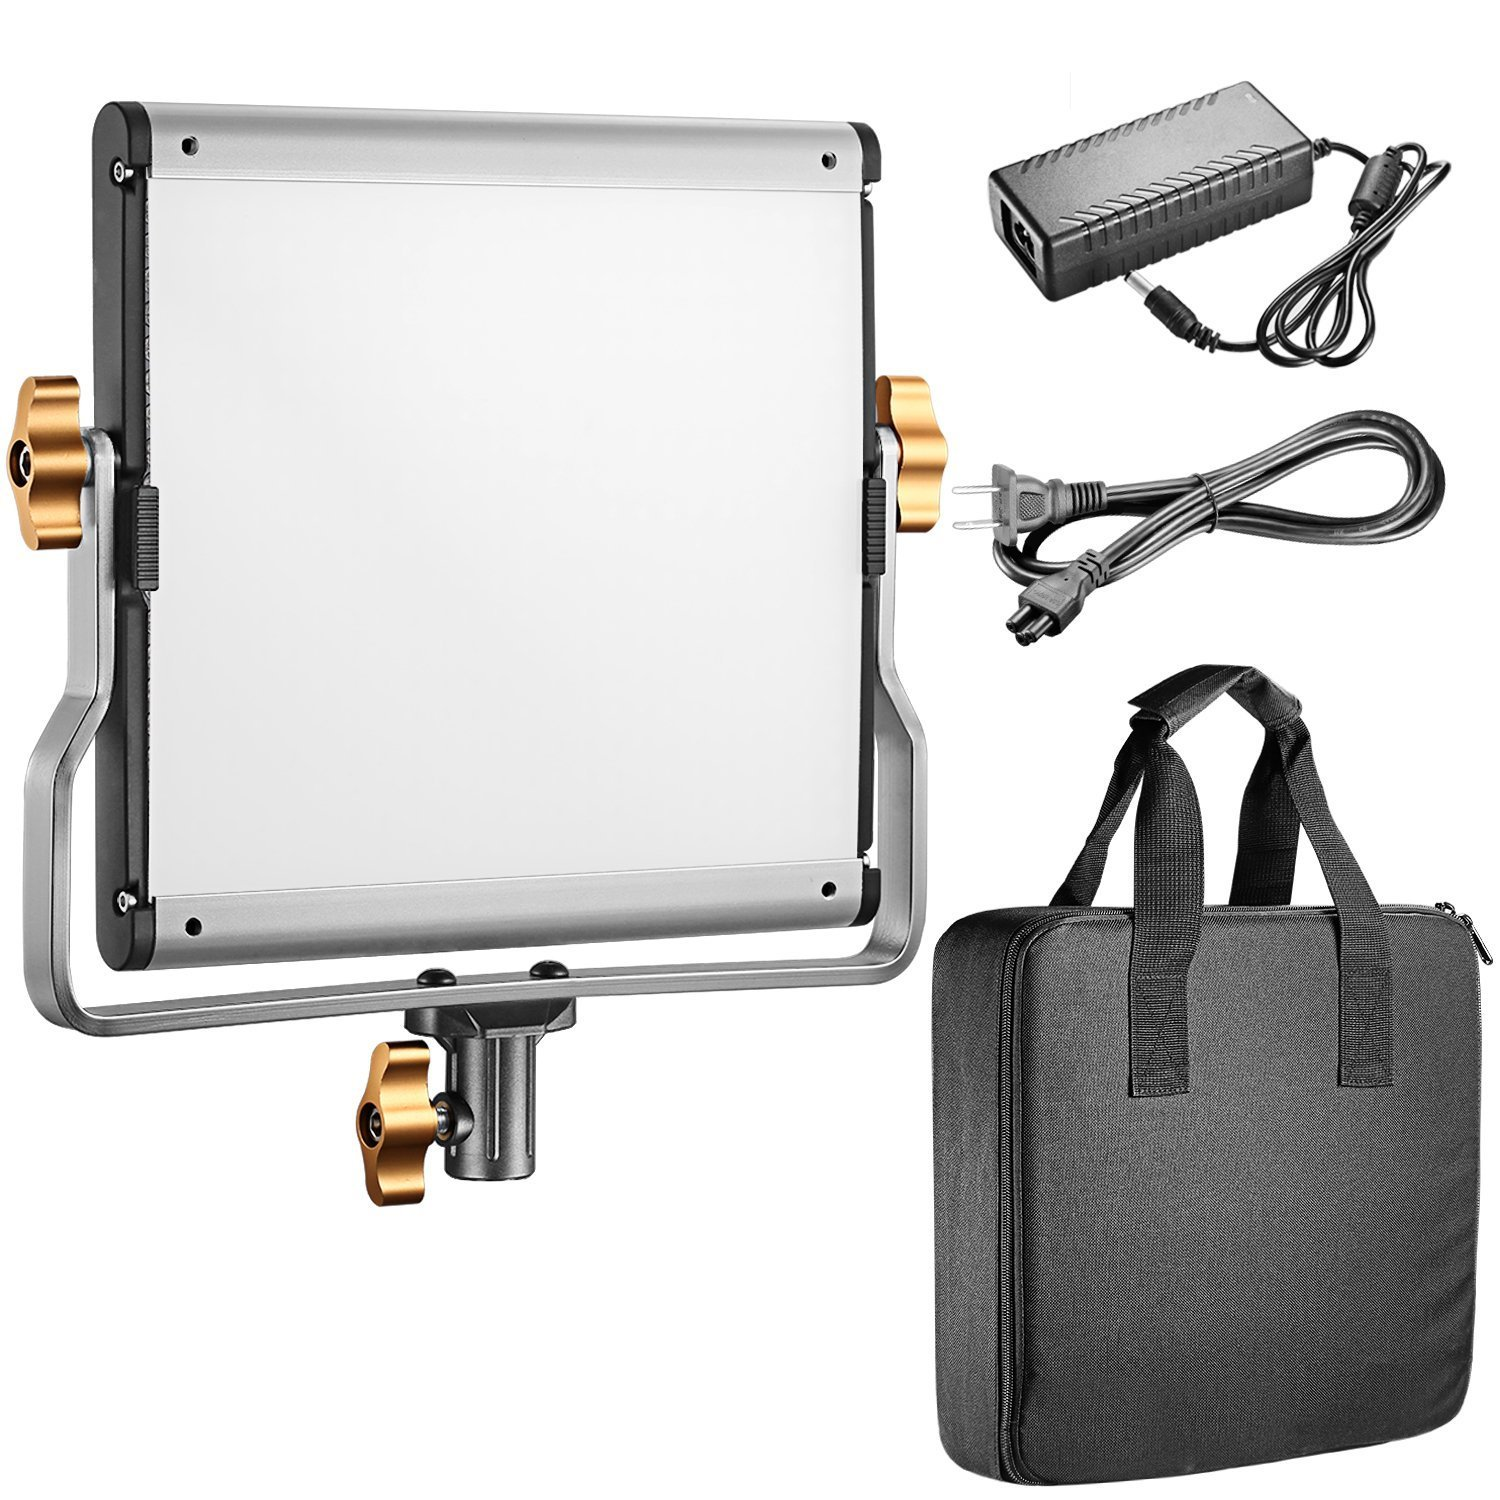 Neewer 480 LED Video Light and Stand Lighting Kit - Dimmable Bi-Color LED Panel with U Bracket (3200-5600K, CRI 96+) and 75-Inch Light Stand for Photo Studio Portrait, YouTube Video Photography by Neewer (Image #2)